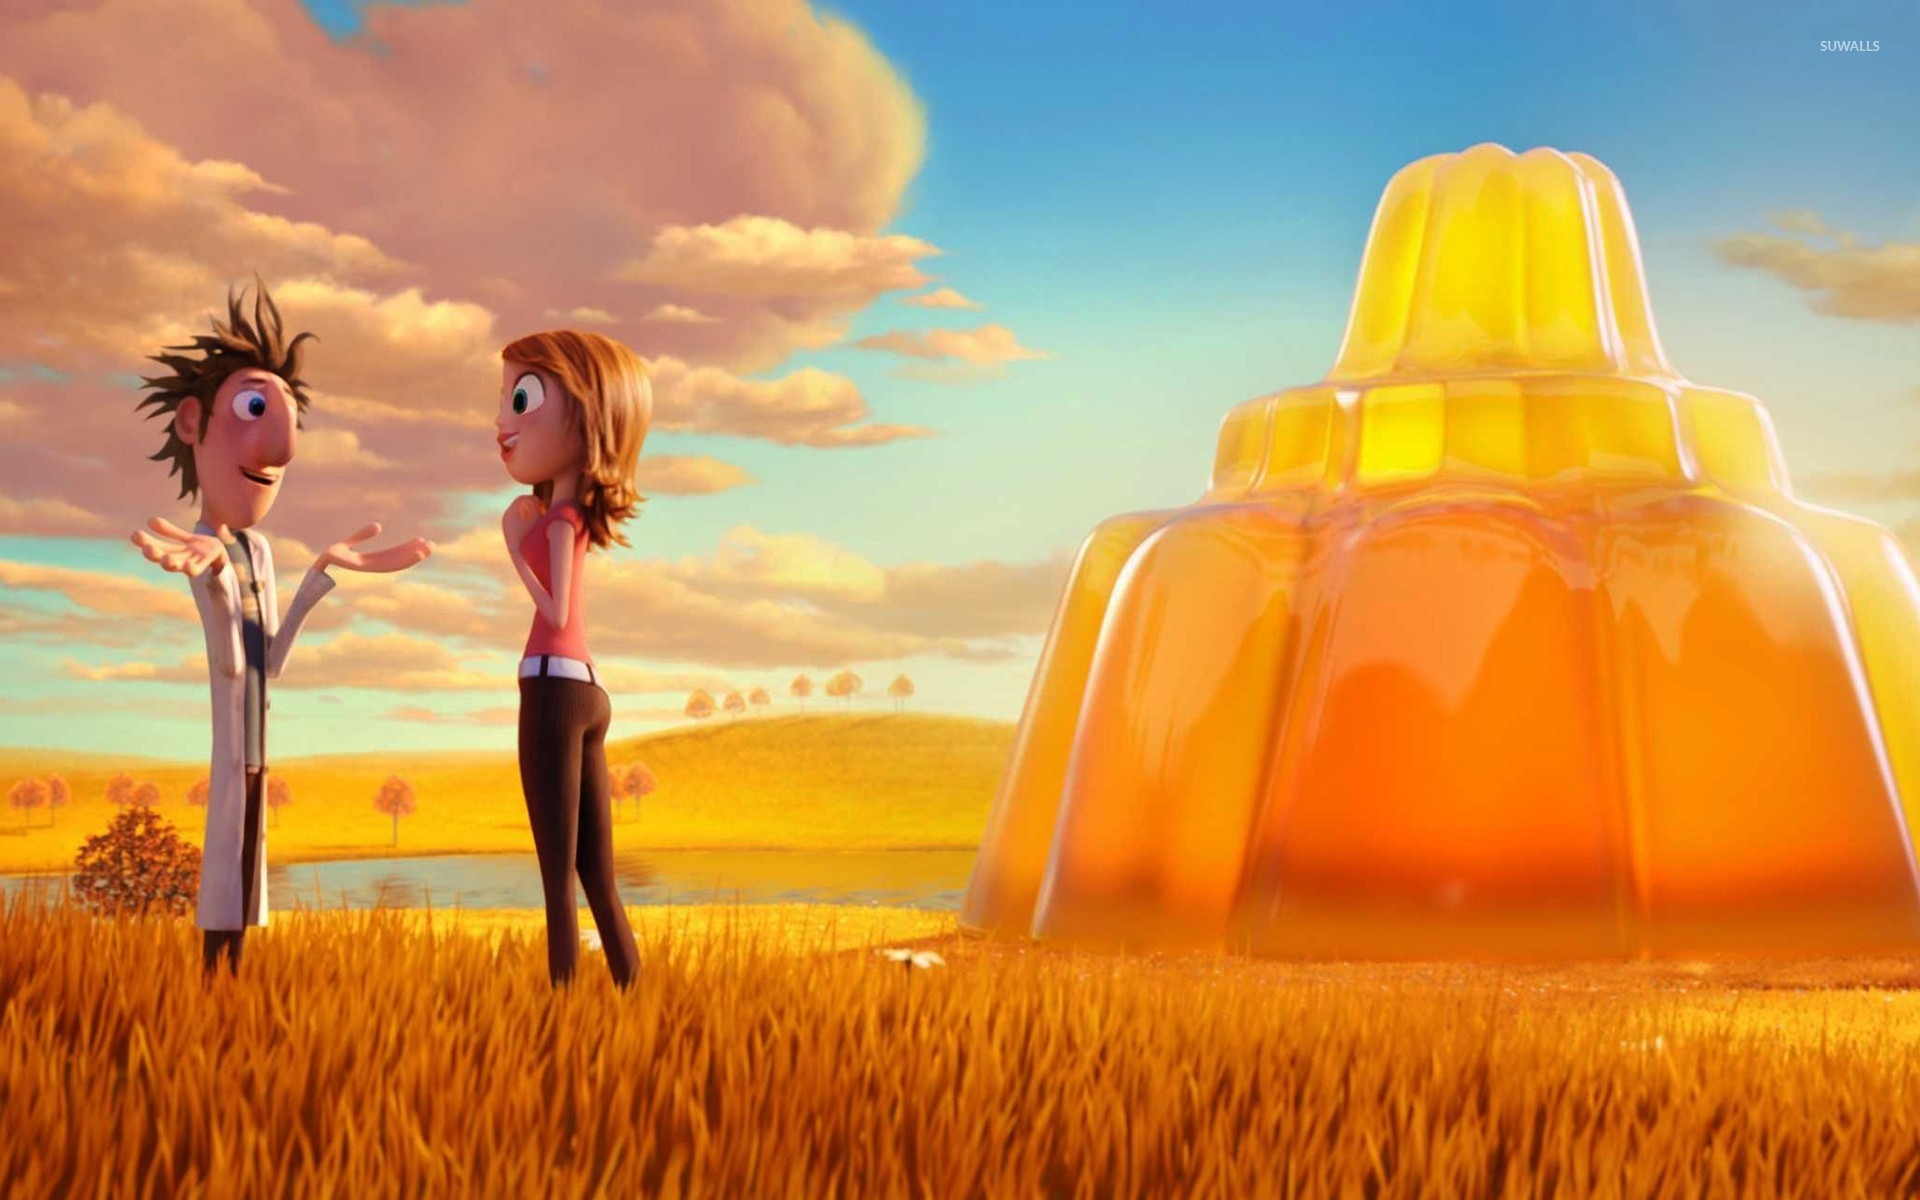 Cloudy With A Chance Of Meatballs 2 Movie free download HD 720p